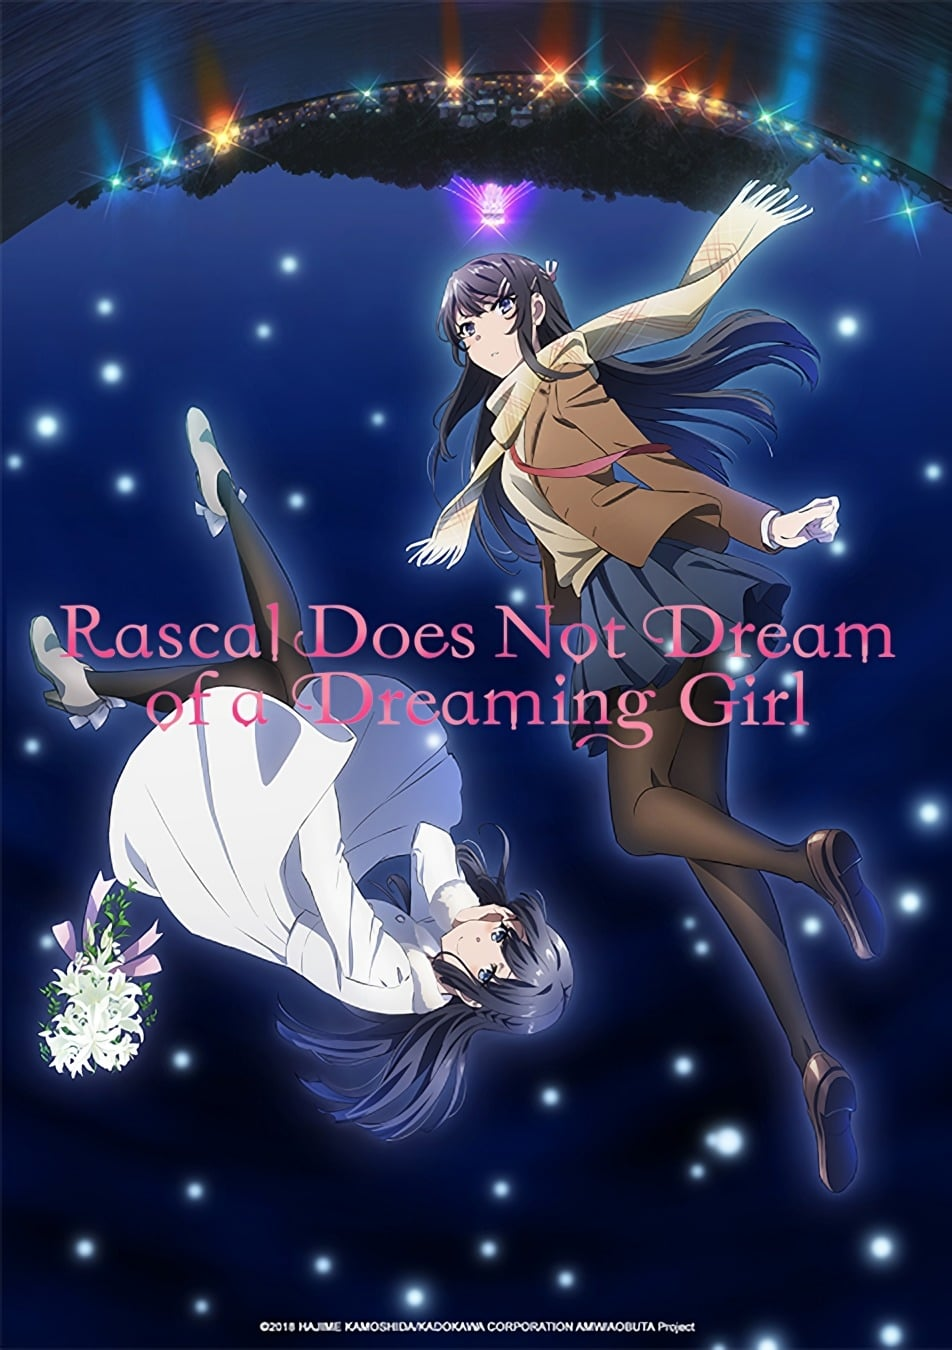 Rascal Does Not Dream of a Dreaming Girl (2019)